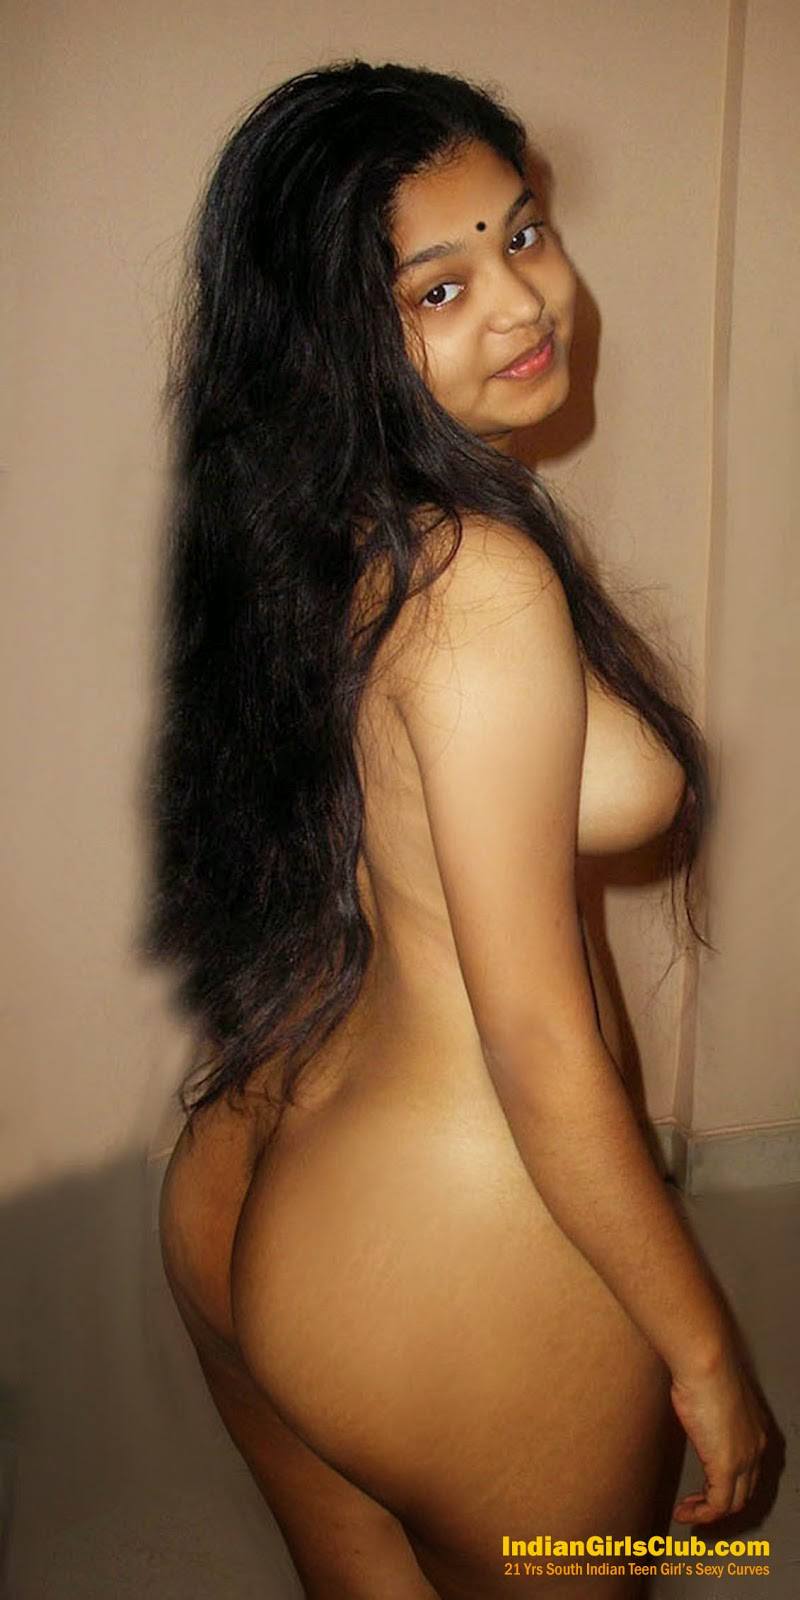 Indian Teen Girls Nude